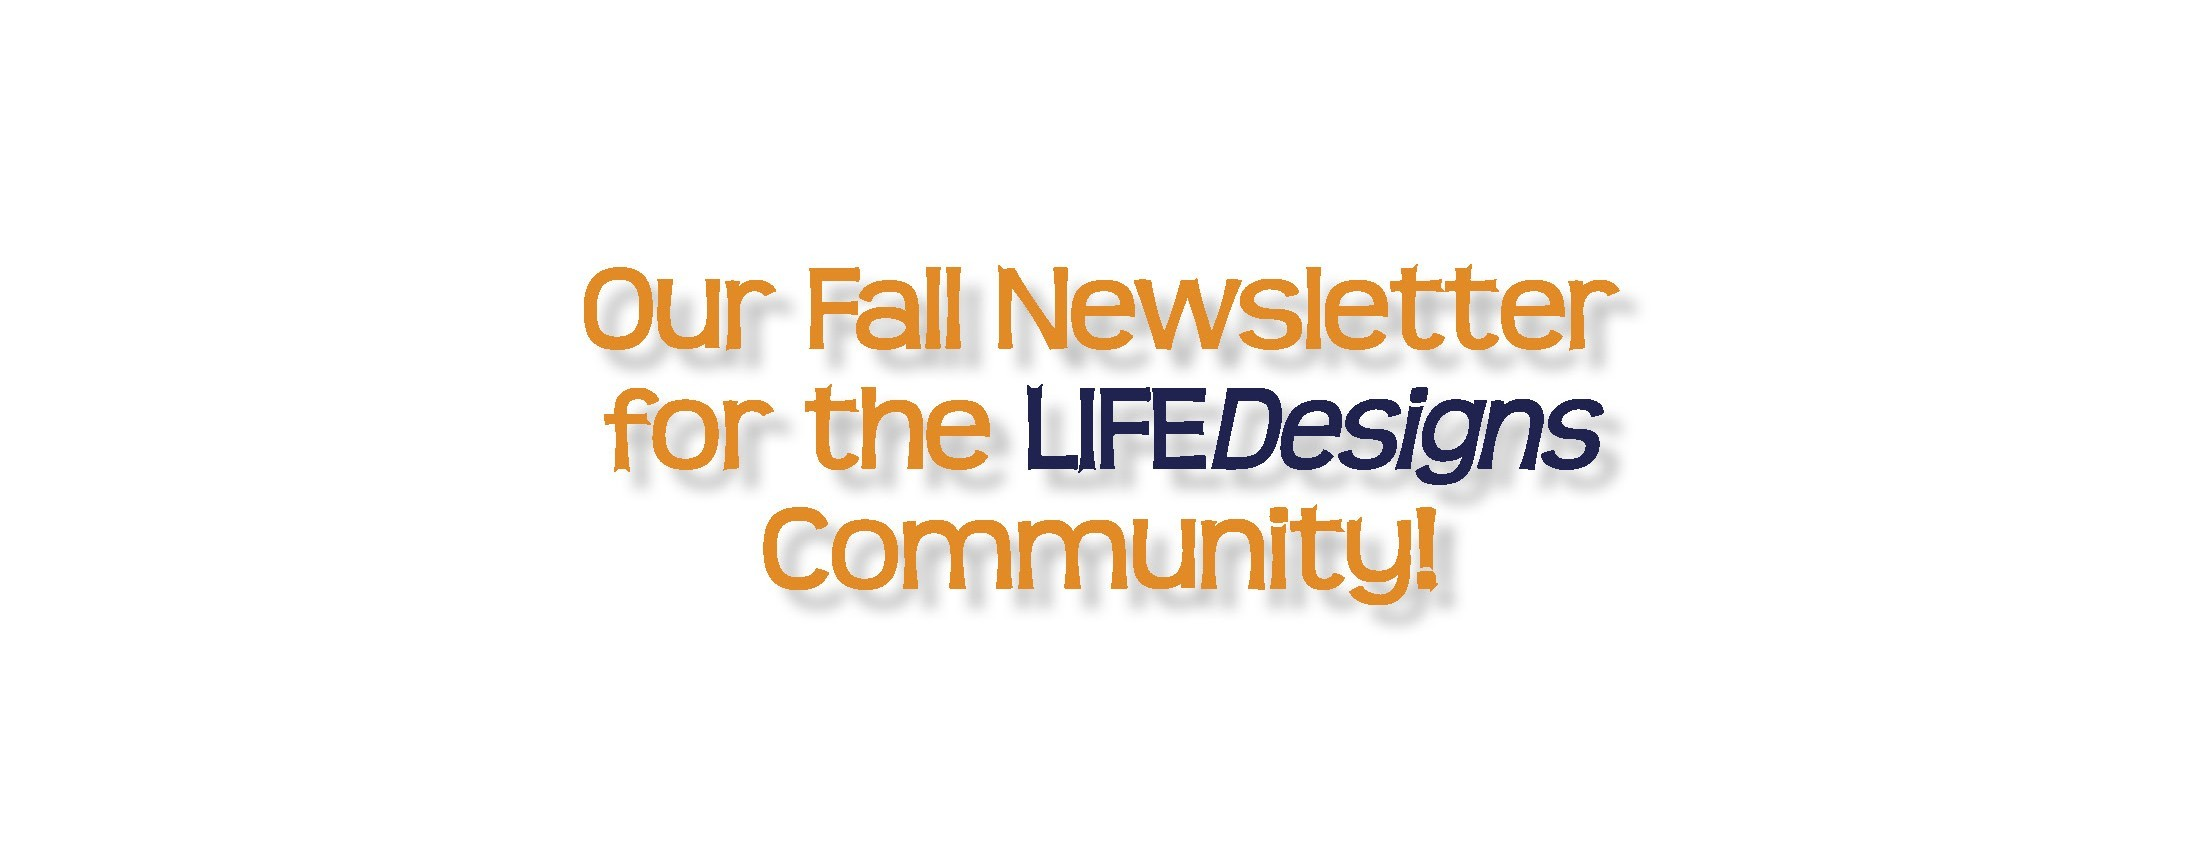 LIFEDesigns Fall Newsletter is Here!